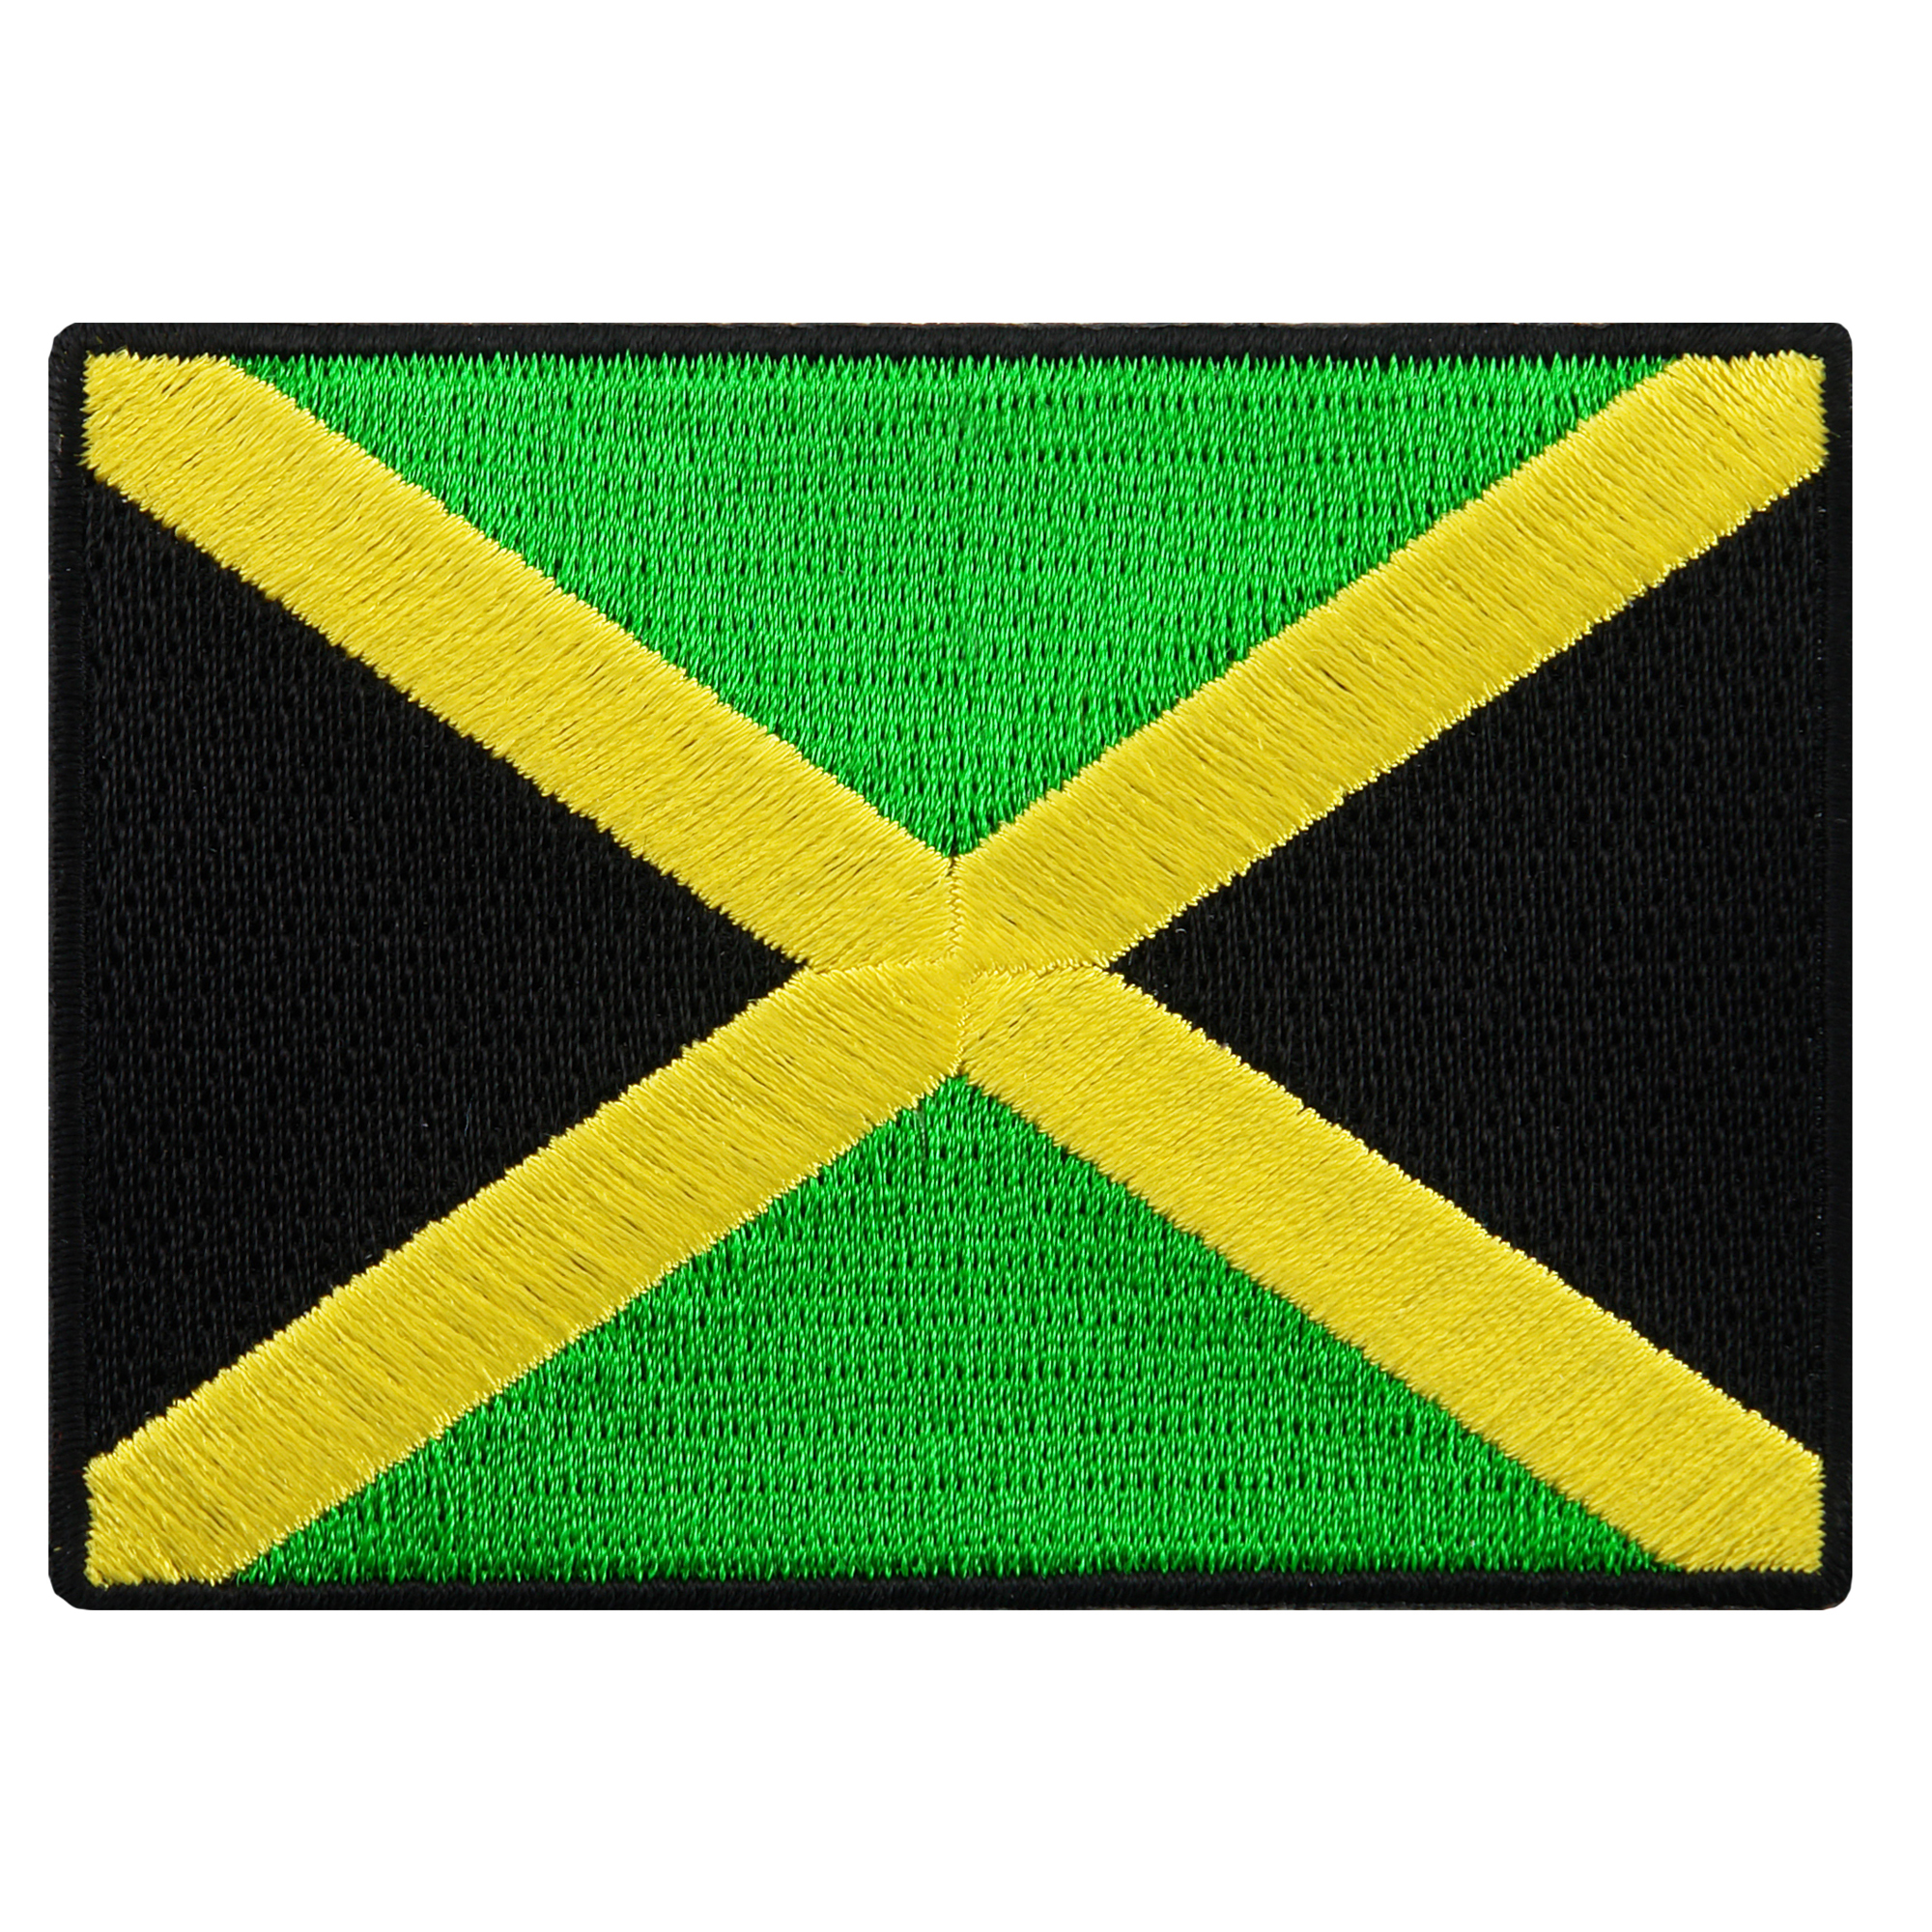 Jamaica Flag Embroidered Iron-on Patch